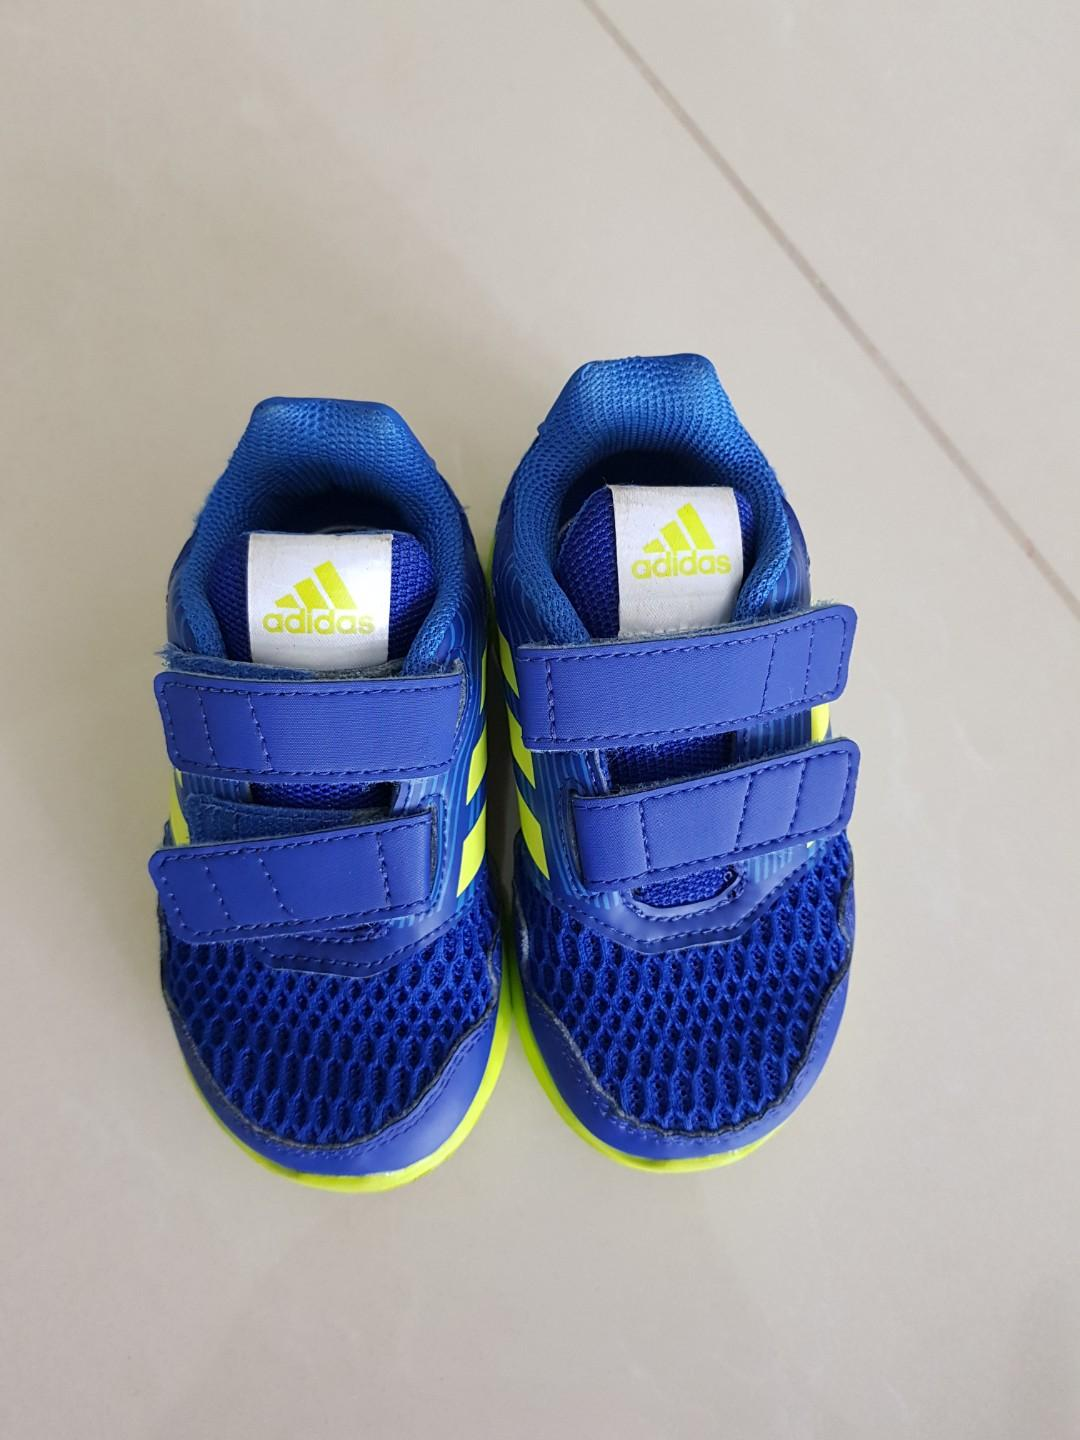 PreOwned Adidas Toddler Shoes, Babies & Kids, Boys' Apparel